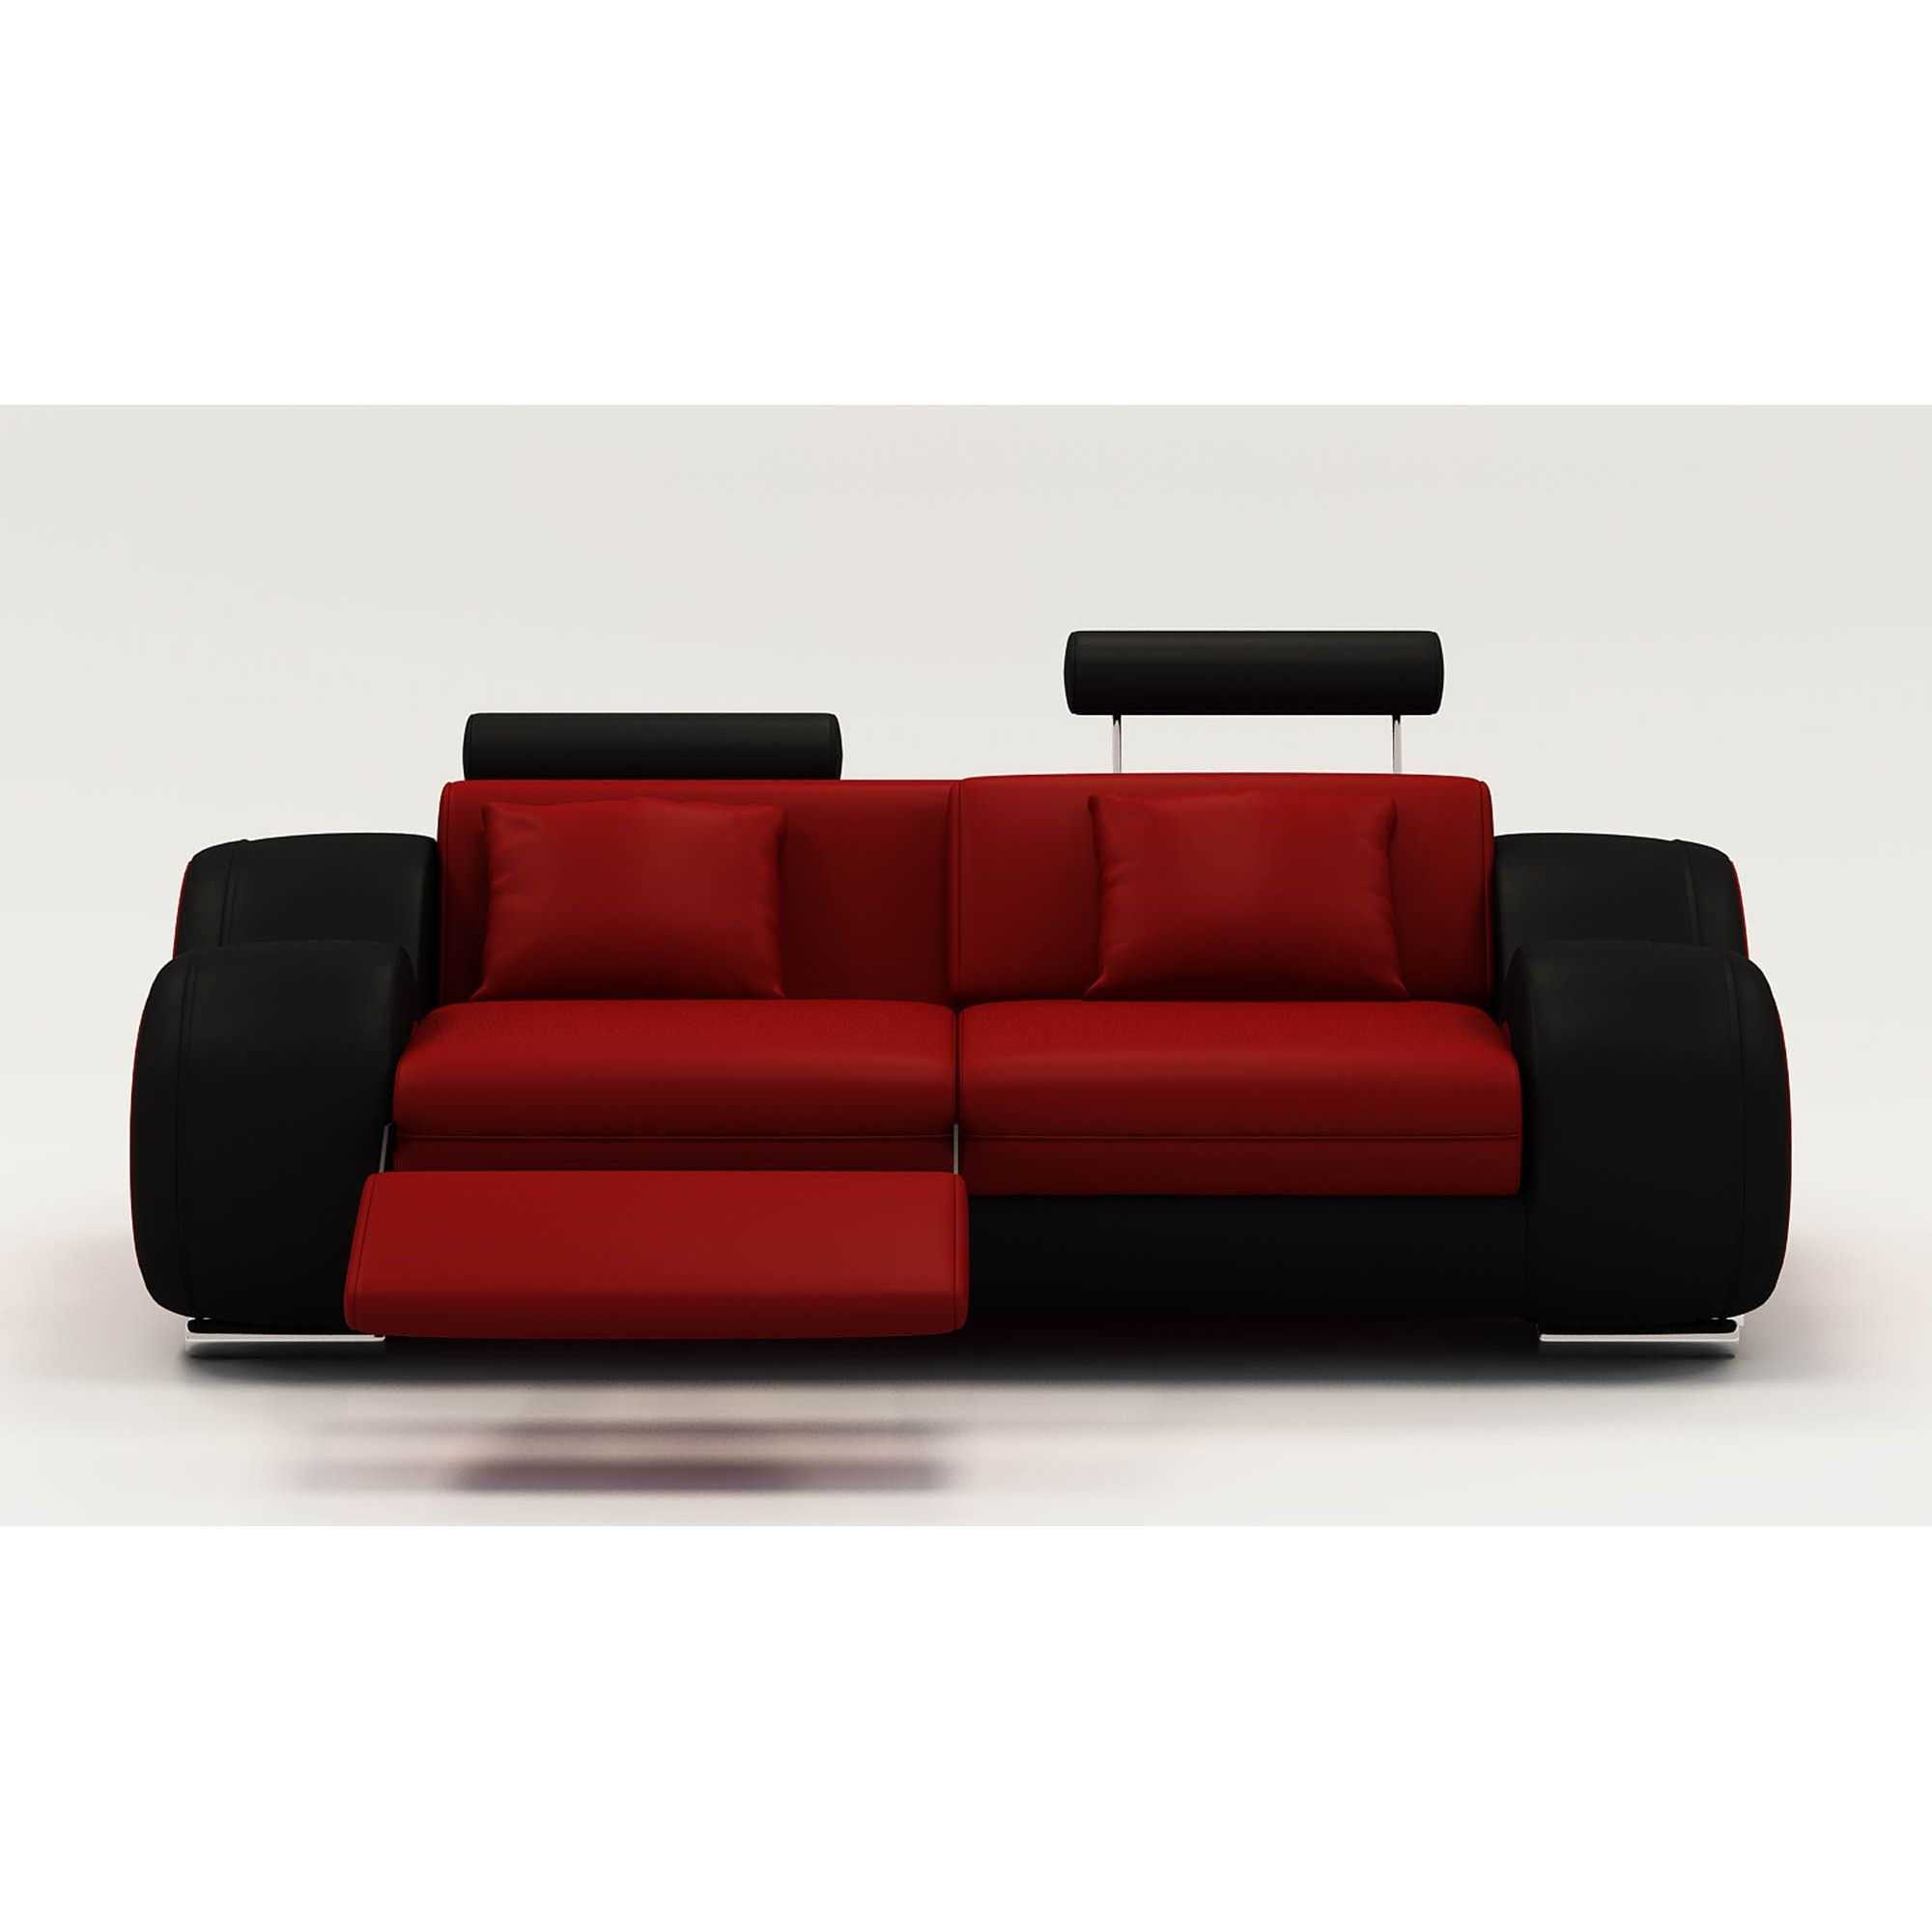 Deco In Paris 5 Canape 2 Places Design Relax Oslo En Cuir Rouge Et Noir Oslo 2pl Rouge Noir